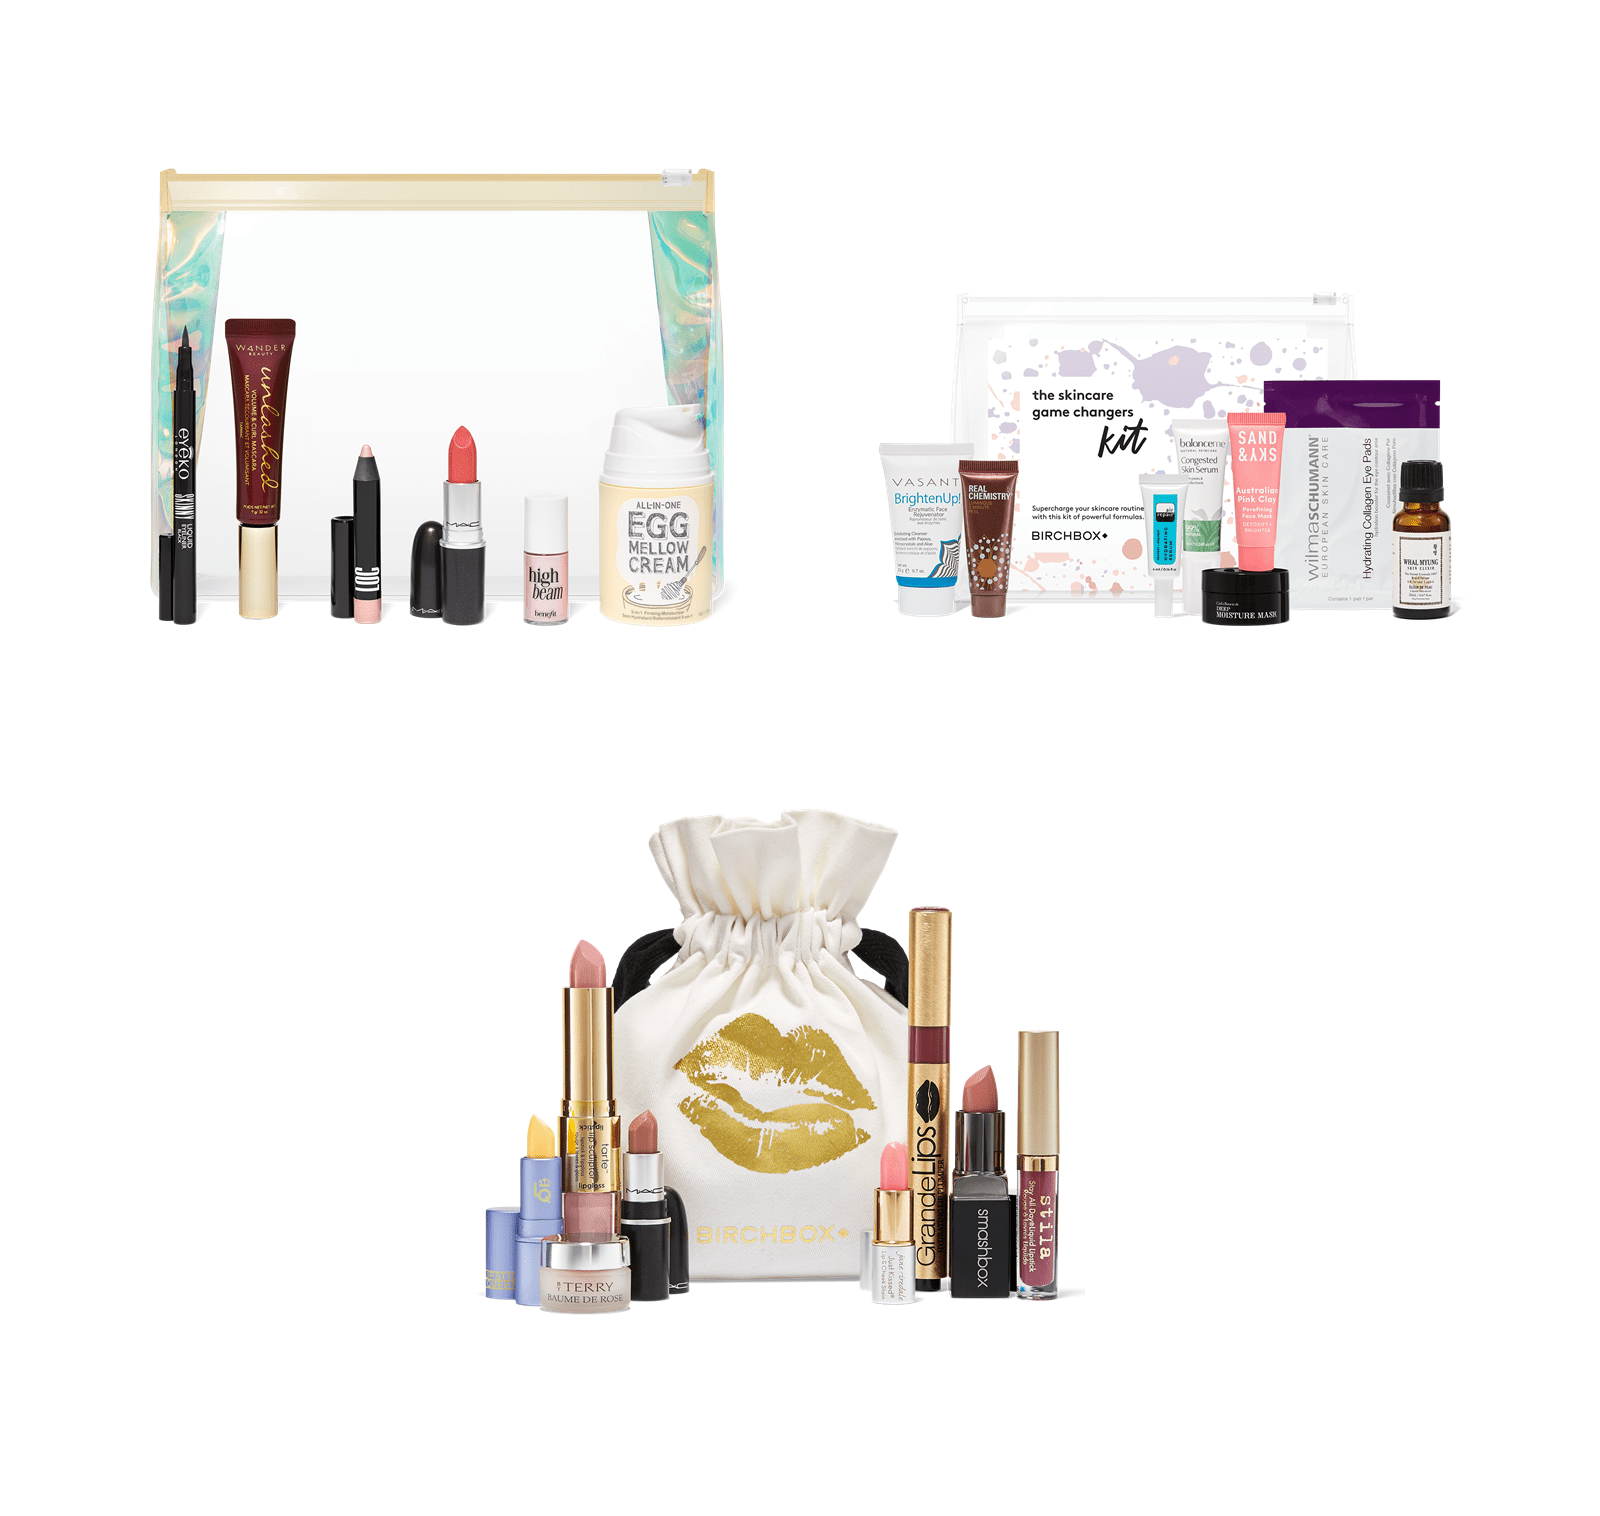 New Birchbox Kits Available Now + Free Gift Coupons!